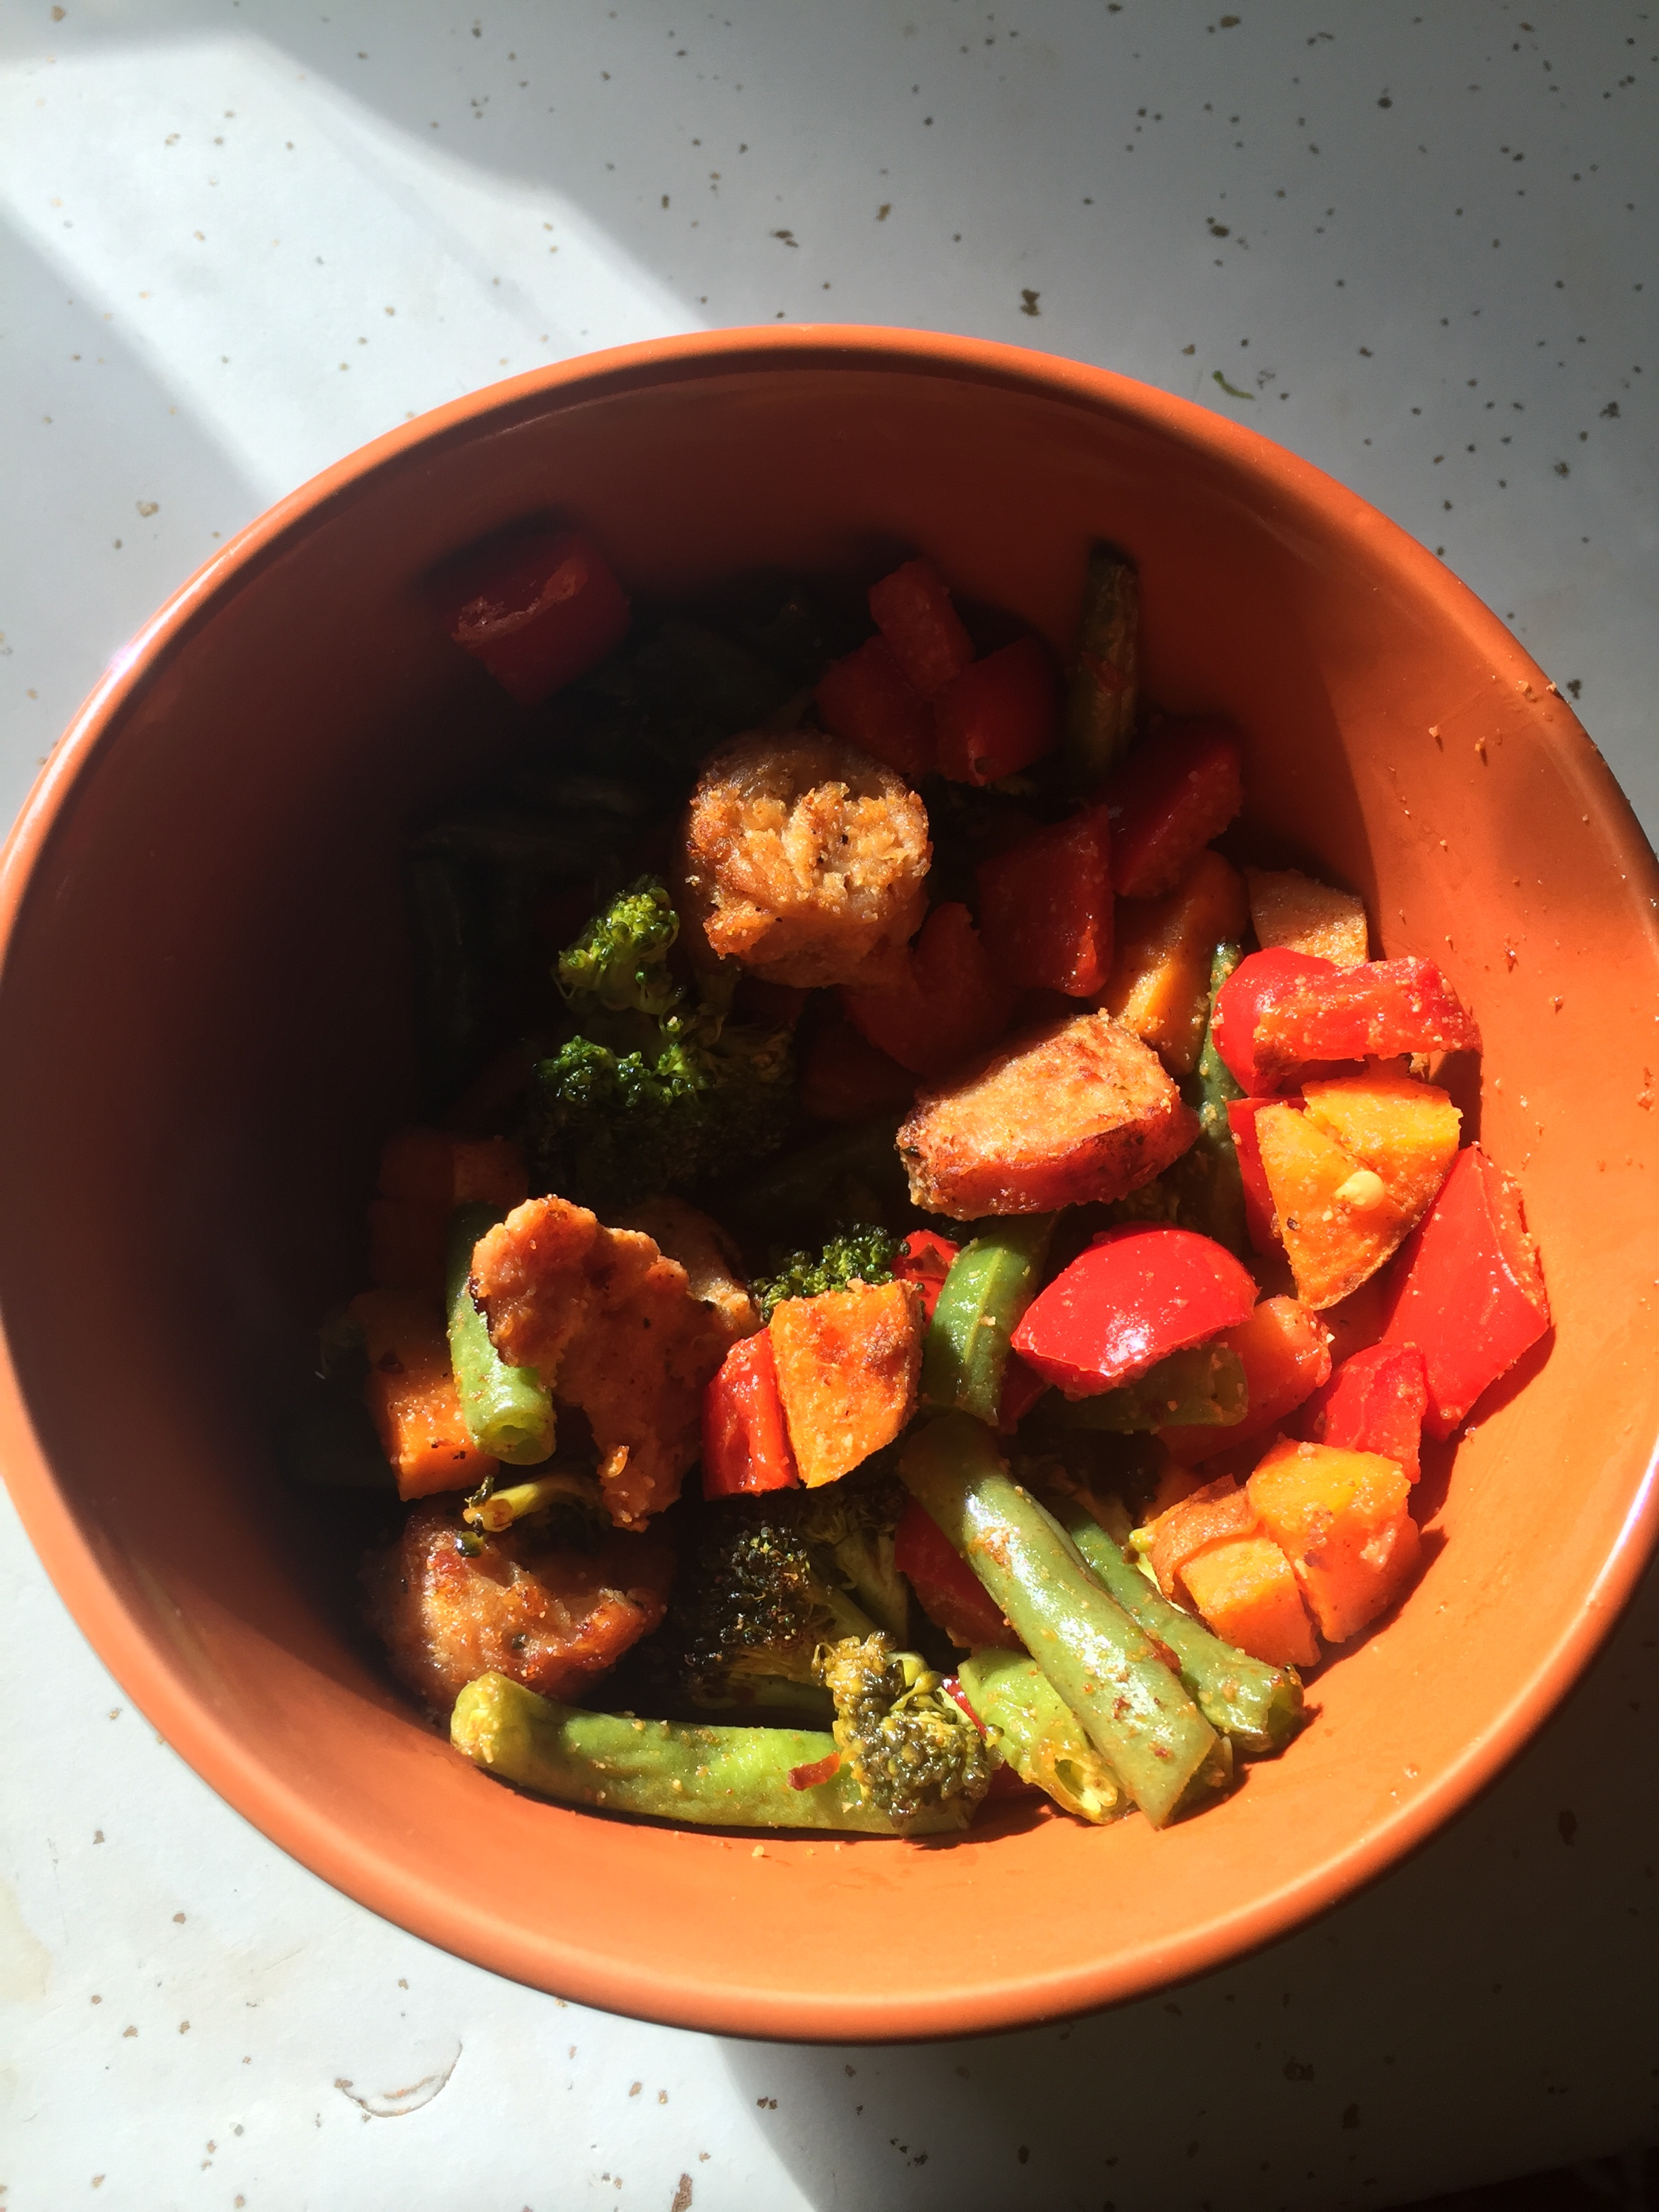 "Ingredients  lb of green beans ( trimmed and cut)  broccoli (medium crown)  red pepper (medium dice)  2 sweet potatoes (cut into bite size pieces)  9-13 oz of chicken or turkey sausage (either smoked ahead of time or browned/cooked in a skillet)  cumin (to taste)  paprika (to taste)  salt and pepper  powdered garlic  red pepper flakes  6 tbls of olive oil                                                            Plan of Attack  Preheat the oven to 400 degrees  Coin the sausage (I had 5 links, but you could have 6 or more)  Chop and trim the vegetables  Add vegetables and sausage to medium mixing bowl. Toss vegetables and sausage coins with olive oil and spices.  Line sheet pan with parchment paper and add vegetable/sausage combination  Put in oven for 15 minutes; remove and stir mixture;  Put back in the oven for a total of 30 minutes.  *Serve and enjoy!!!  * The recipe initially didn't have cumin (but I added with a liberal hand). I like spicy hot and spice...so this was a big hit in my lonely kitchen. You could serve over quinoa but I would just add more sausage. It is a battle cry in my house ""more sausage!"". Just kidding of course...we're way choosy about our sausage and our vegetables! Your body is your temple and I am choosy about feeding mine only my best sausage!"